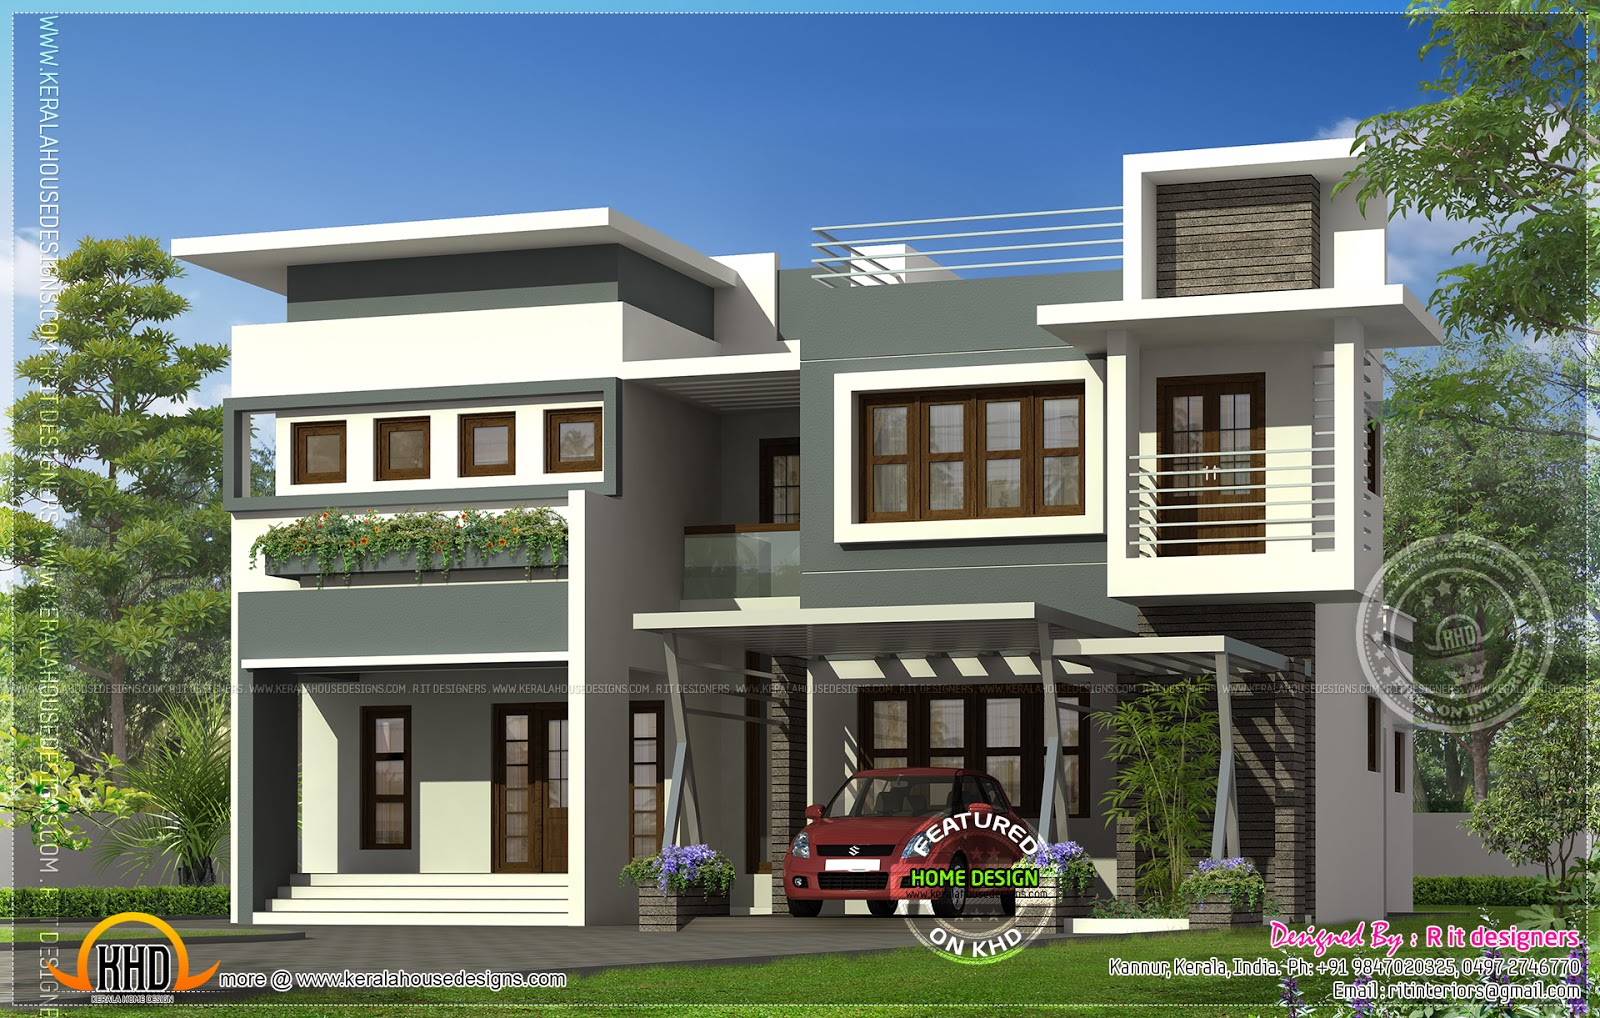 Modern contemporary residence design home kerala plans Design home modern